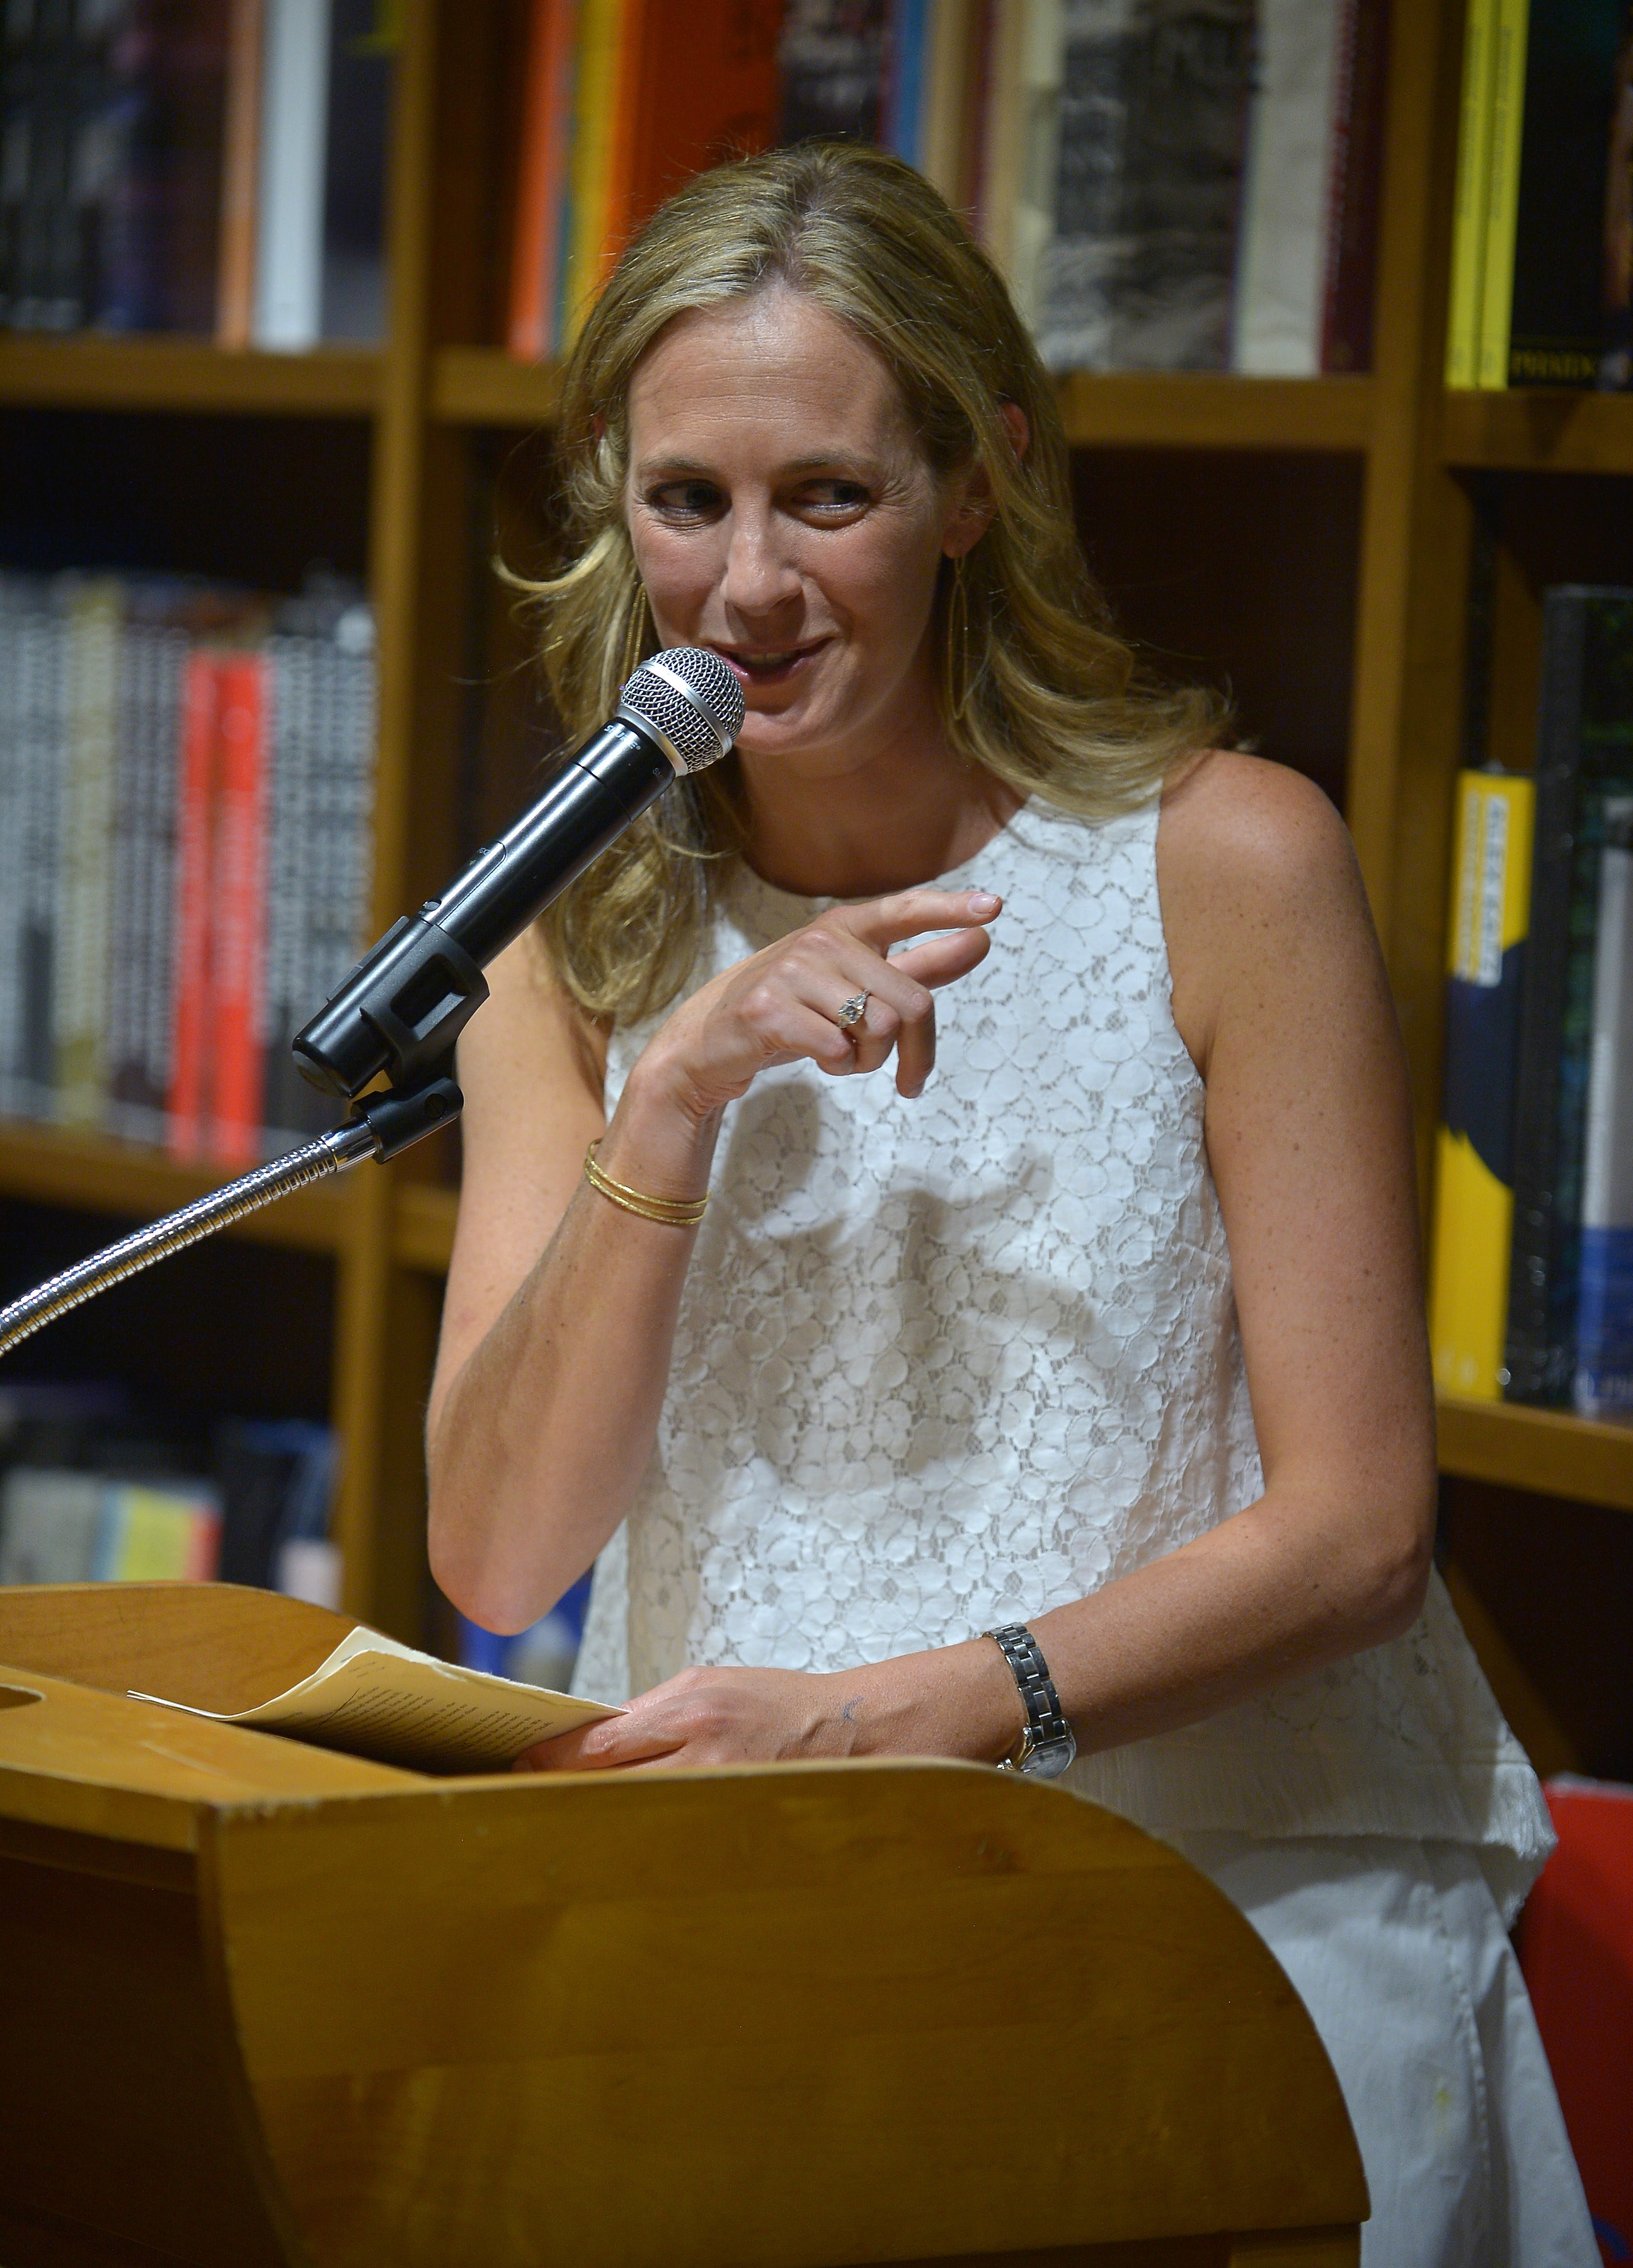 """Author Lauren Weisberger discuss and sign copies of her new book """"The Singles Game"""" at Books and Books on July 19, 2016 in Coral Gables, Florida"""